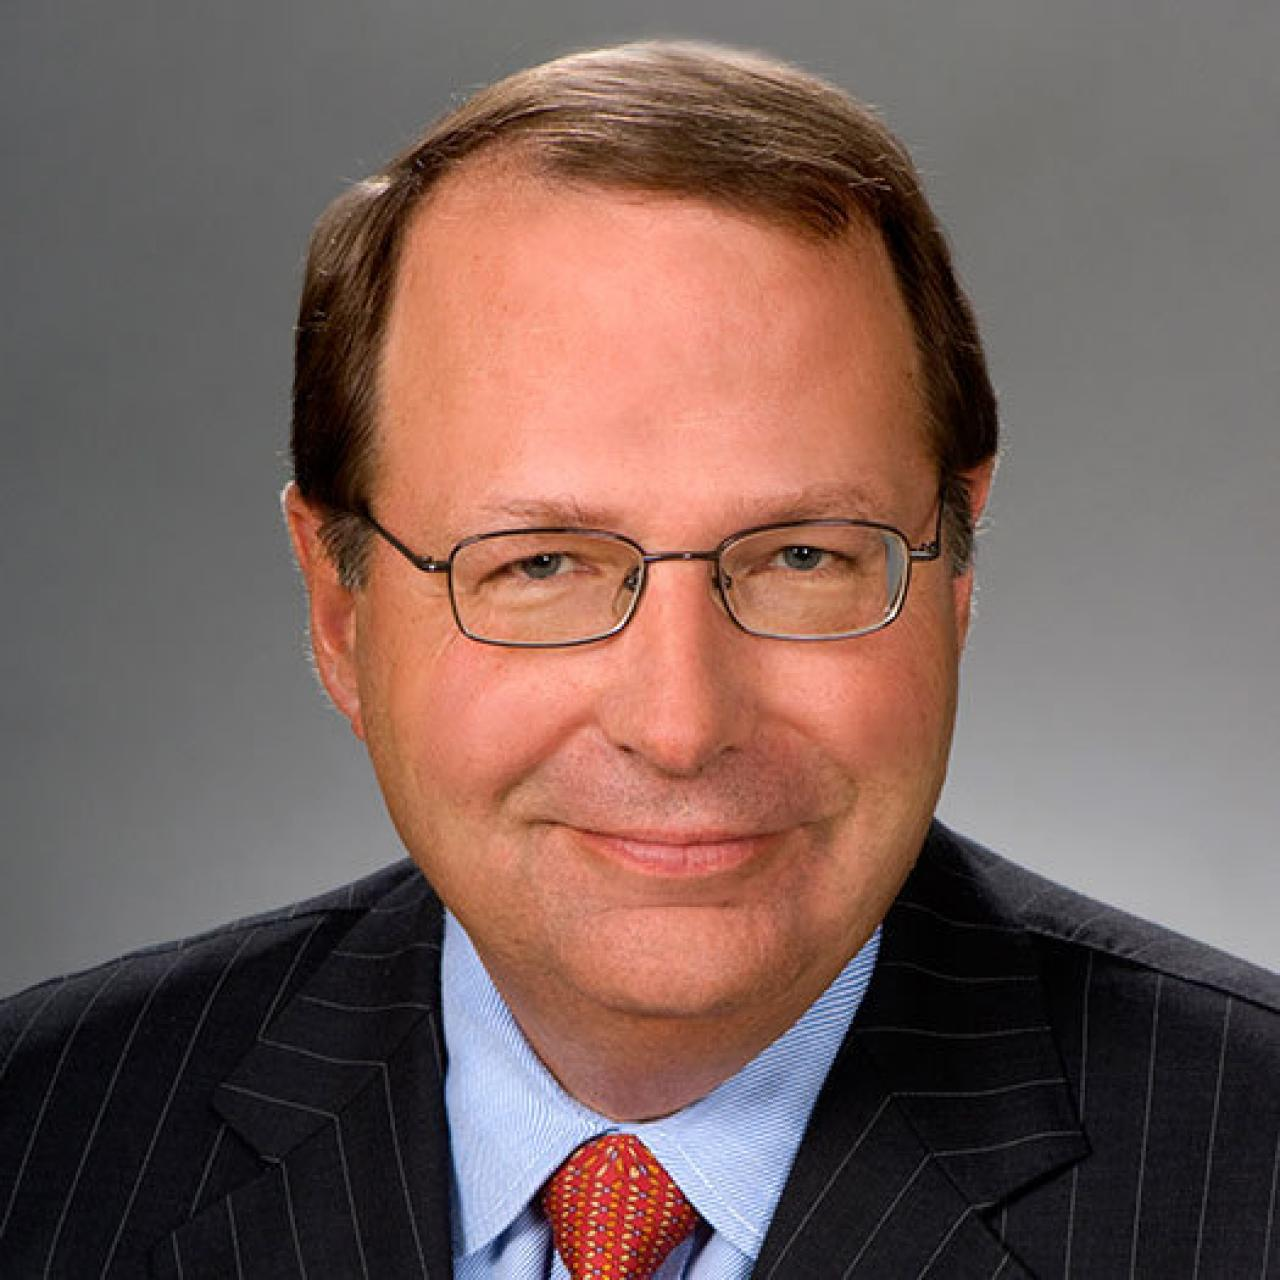 Image of Stephen D. Steinour, Chairman, President and Chief Executive Office of Huntington Bancshares, Inc.